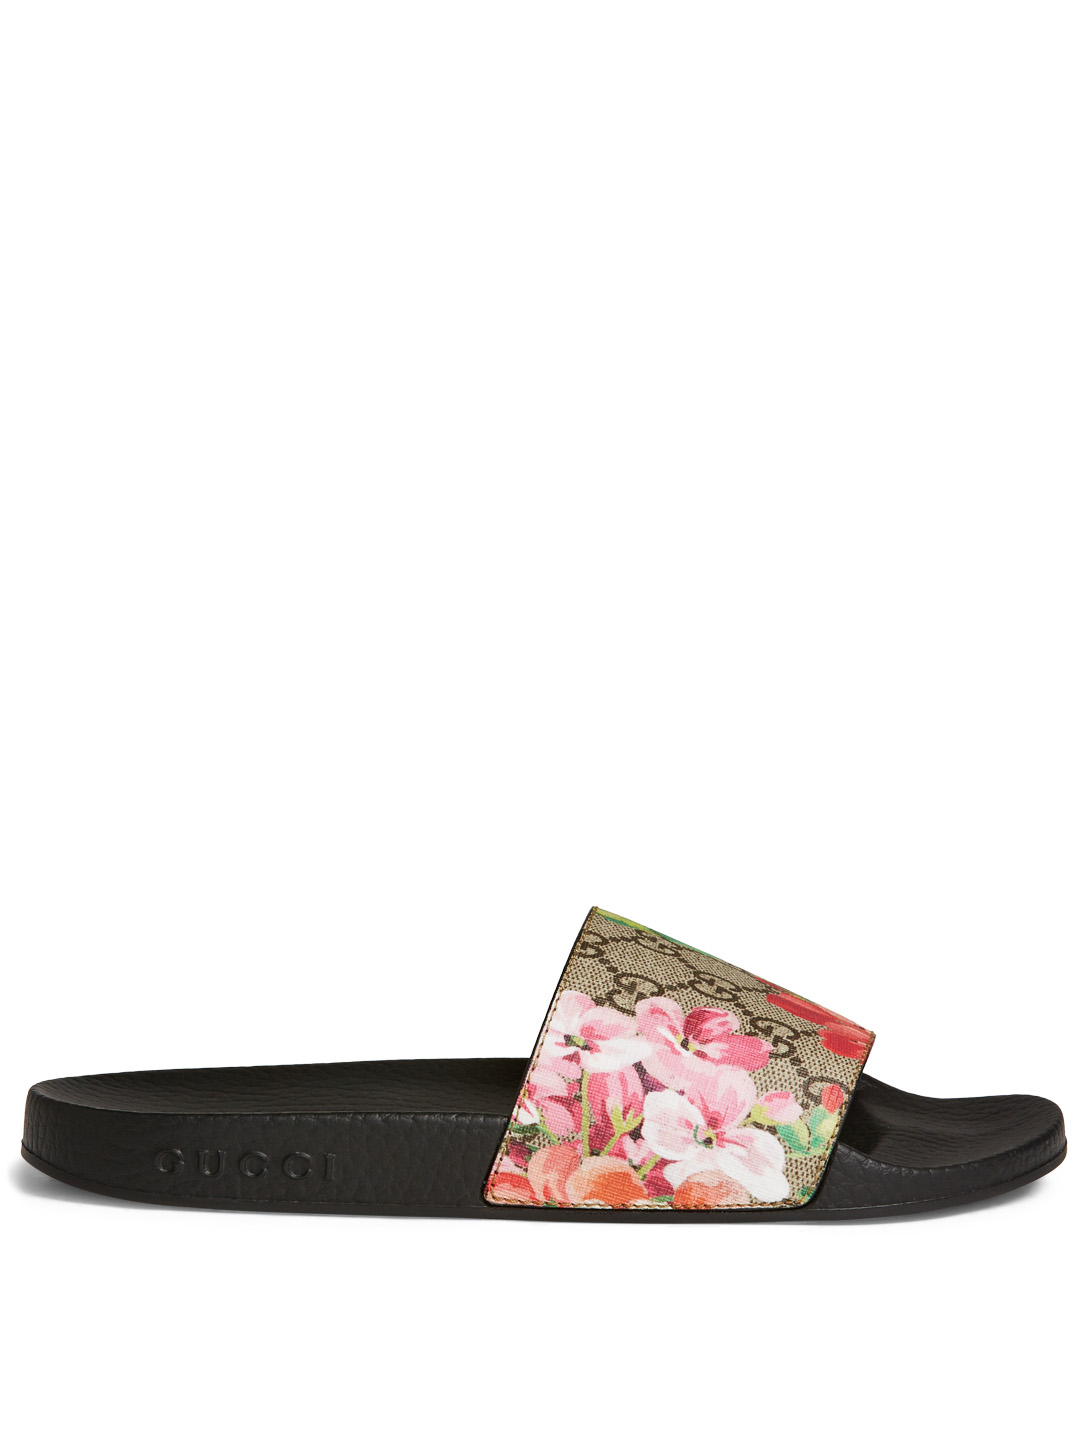 GUCCI GG Blooms Supreme Pool Slides Designers Neutral